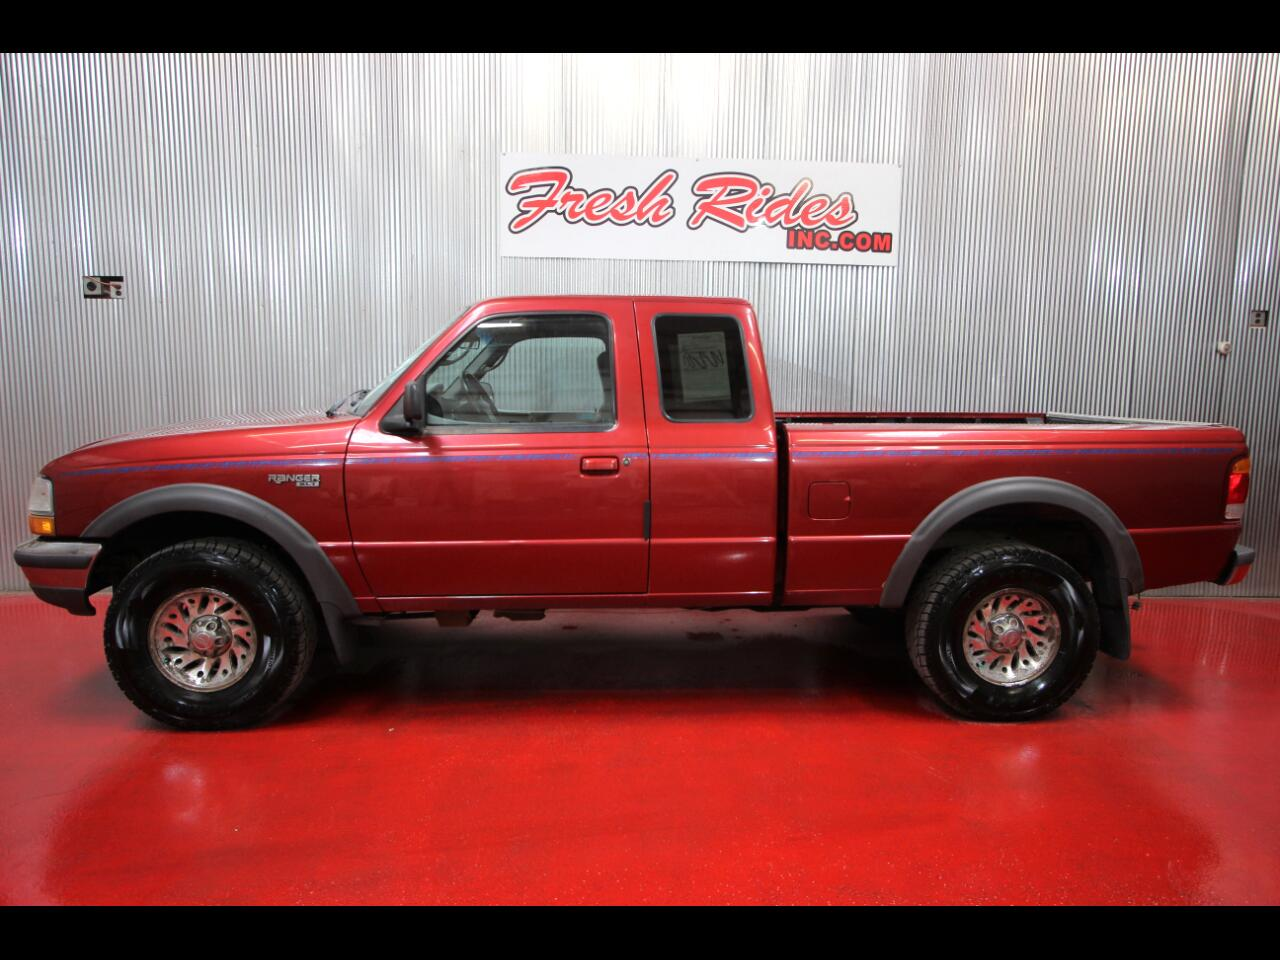 1998 Ford Ranger Supercab 126